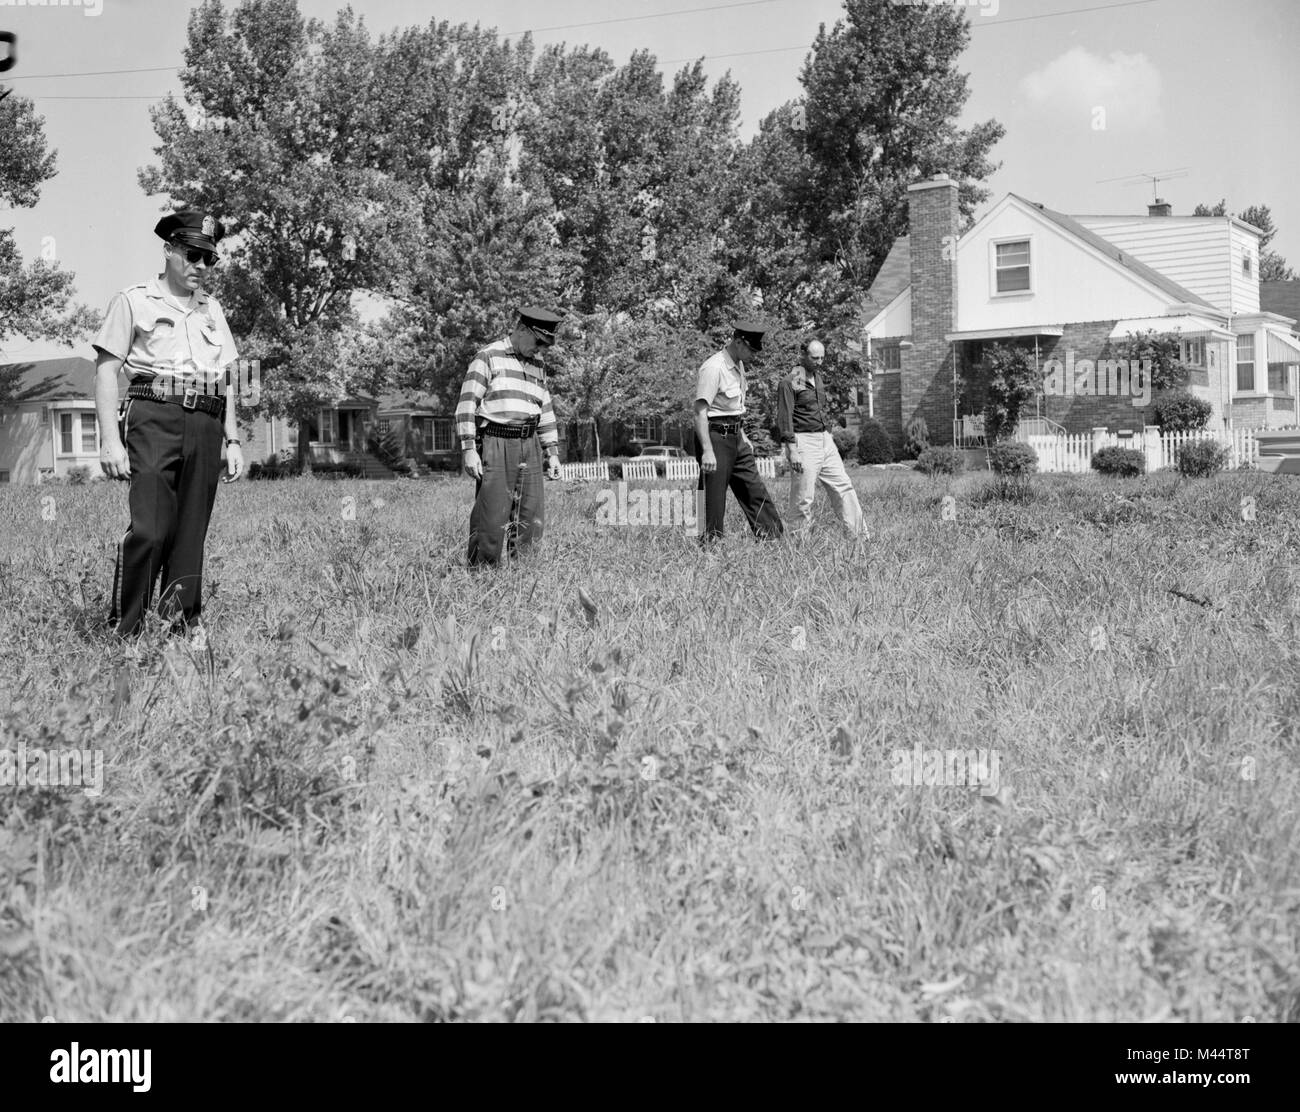 Police search a field for clues in a crime, ca. 1960. - Stock Image